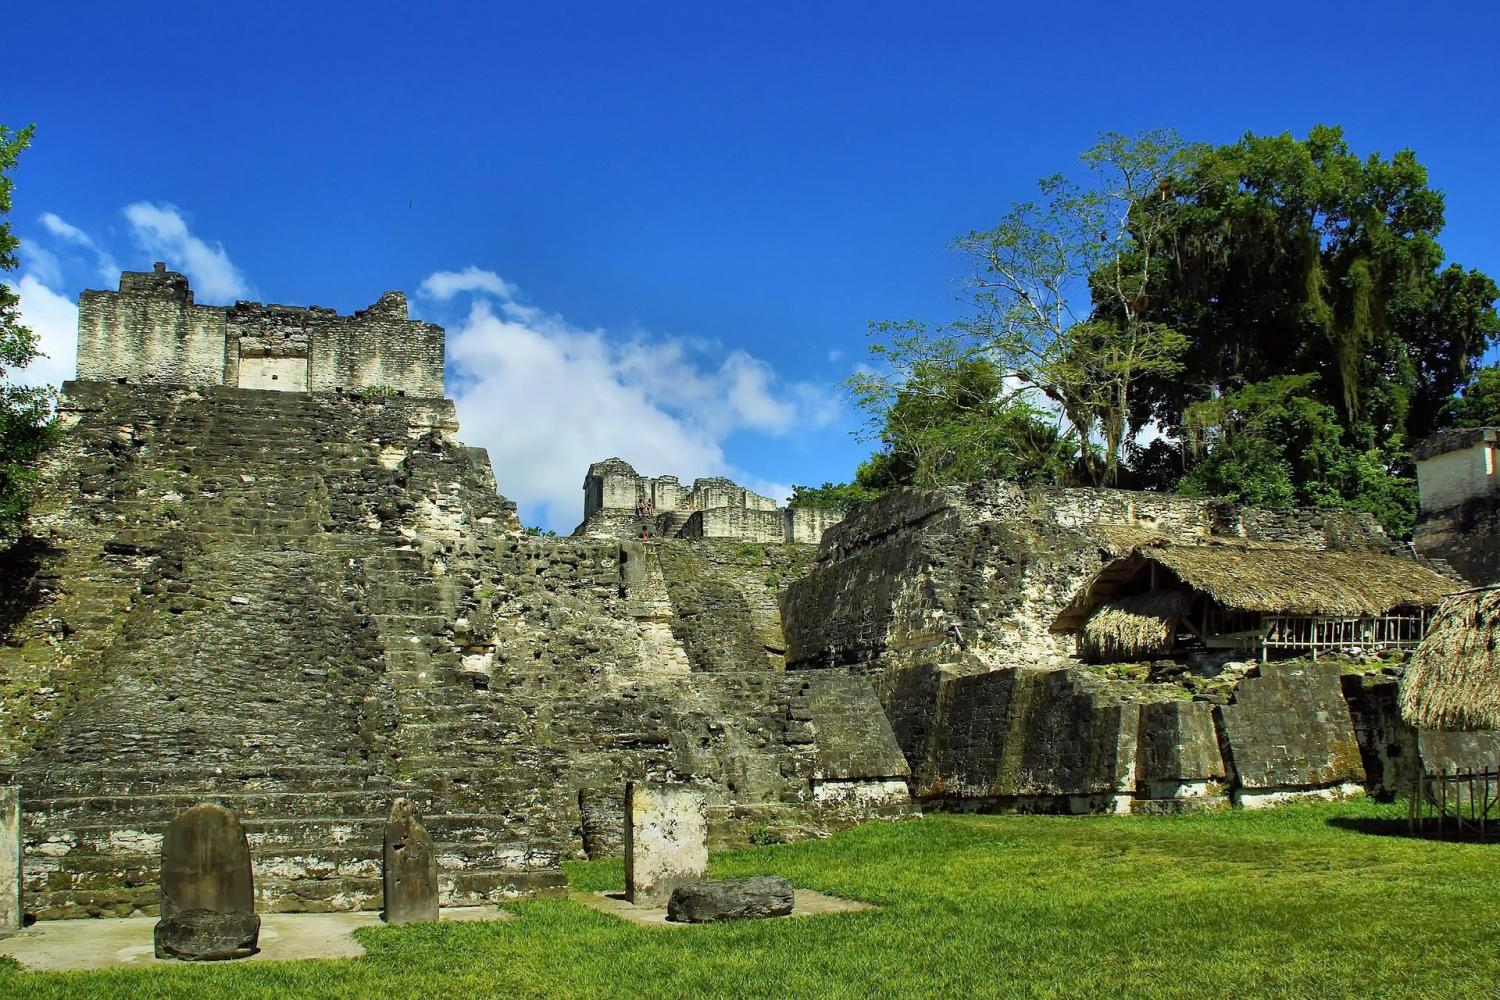 Mayan Ruins Tikal & Yaxha Tour 2 Days / 1 Night, from Guatemala City